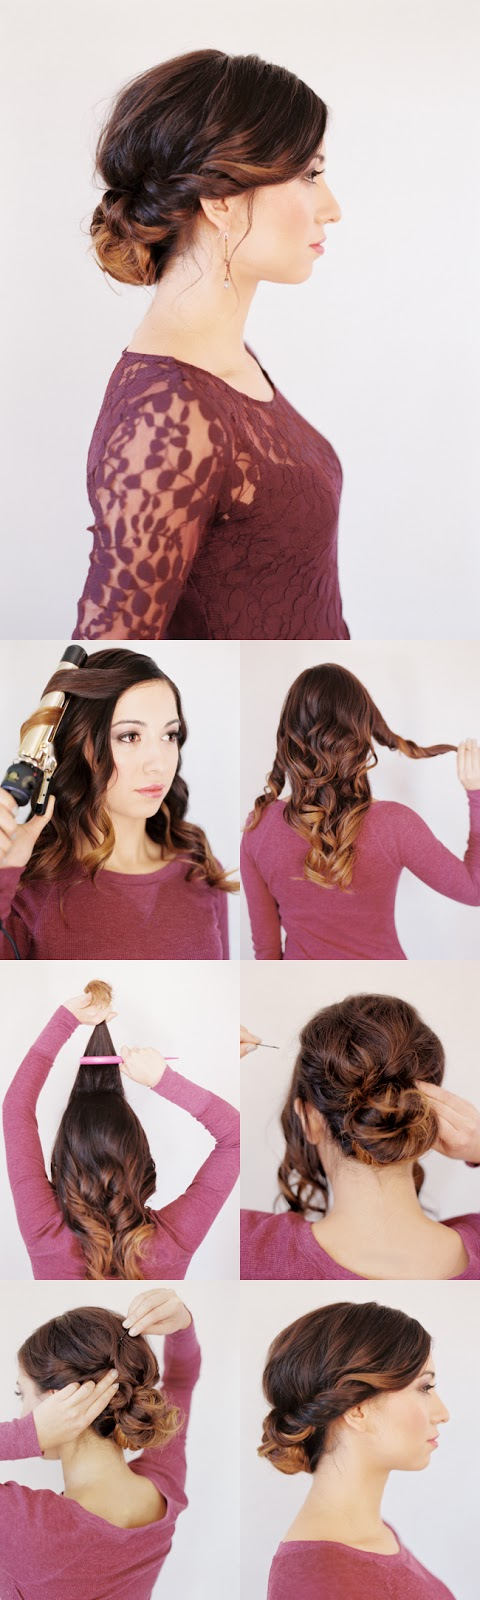 Spring step by step hair tuotrials